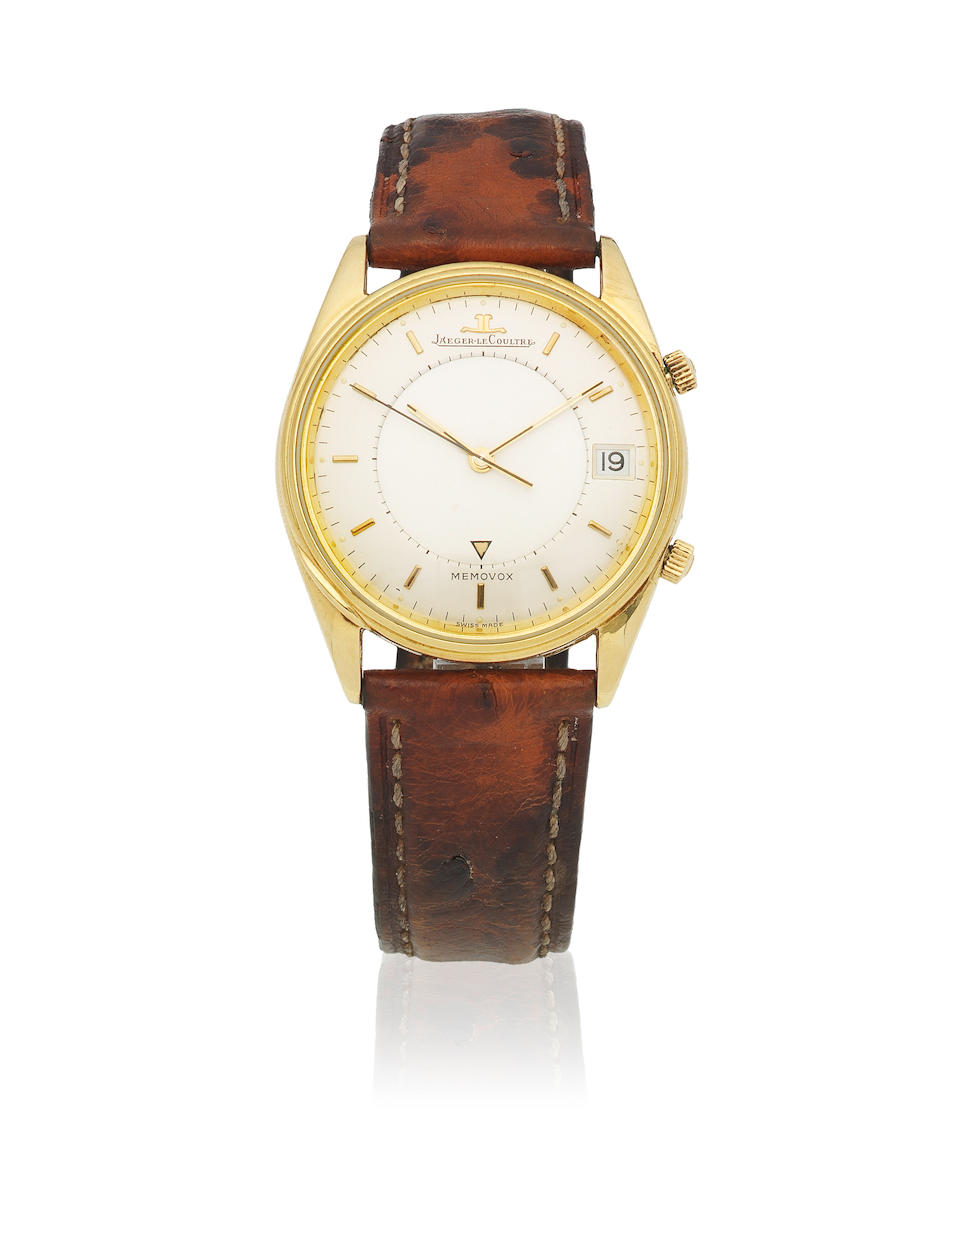 Jaeger-LeCoultre. A Limited Edition 18K gold automatic calendar wristwatch with alarm  Memovox, Sold 6th November 1986